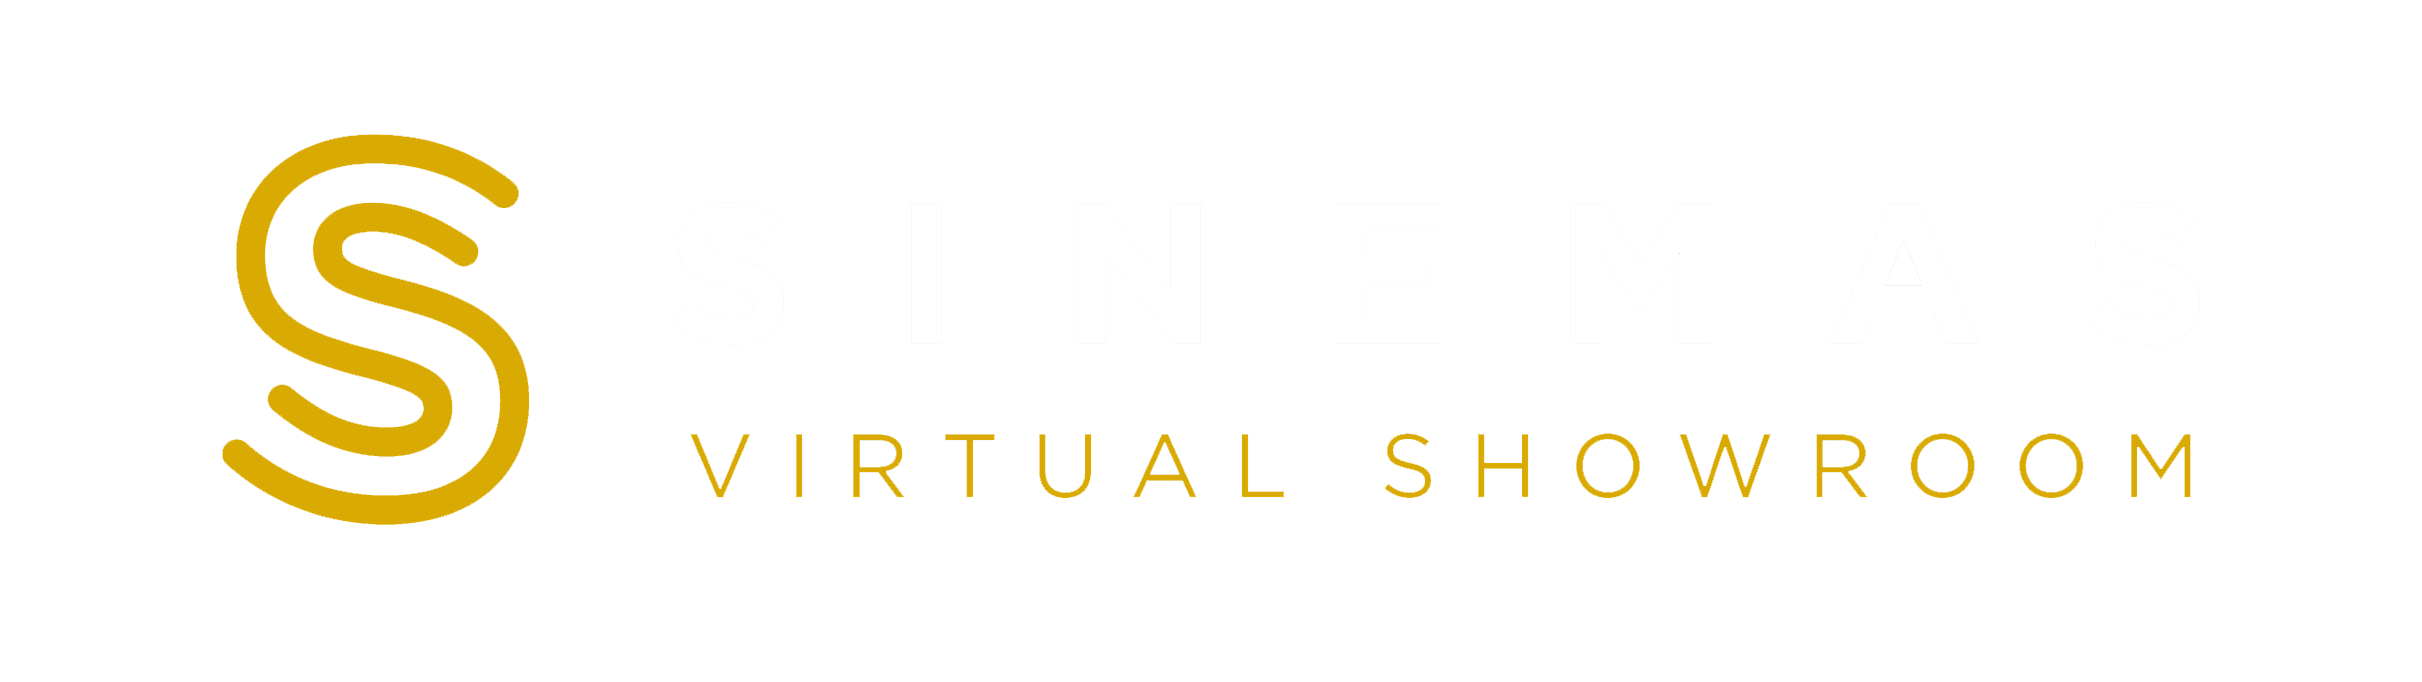 sinemas virtual showroom